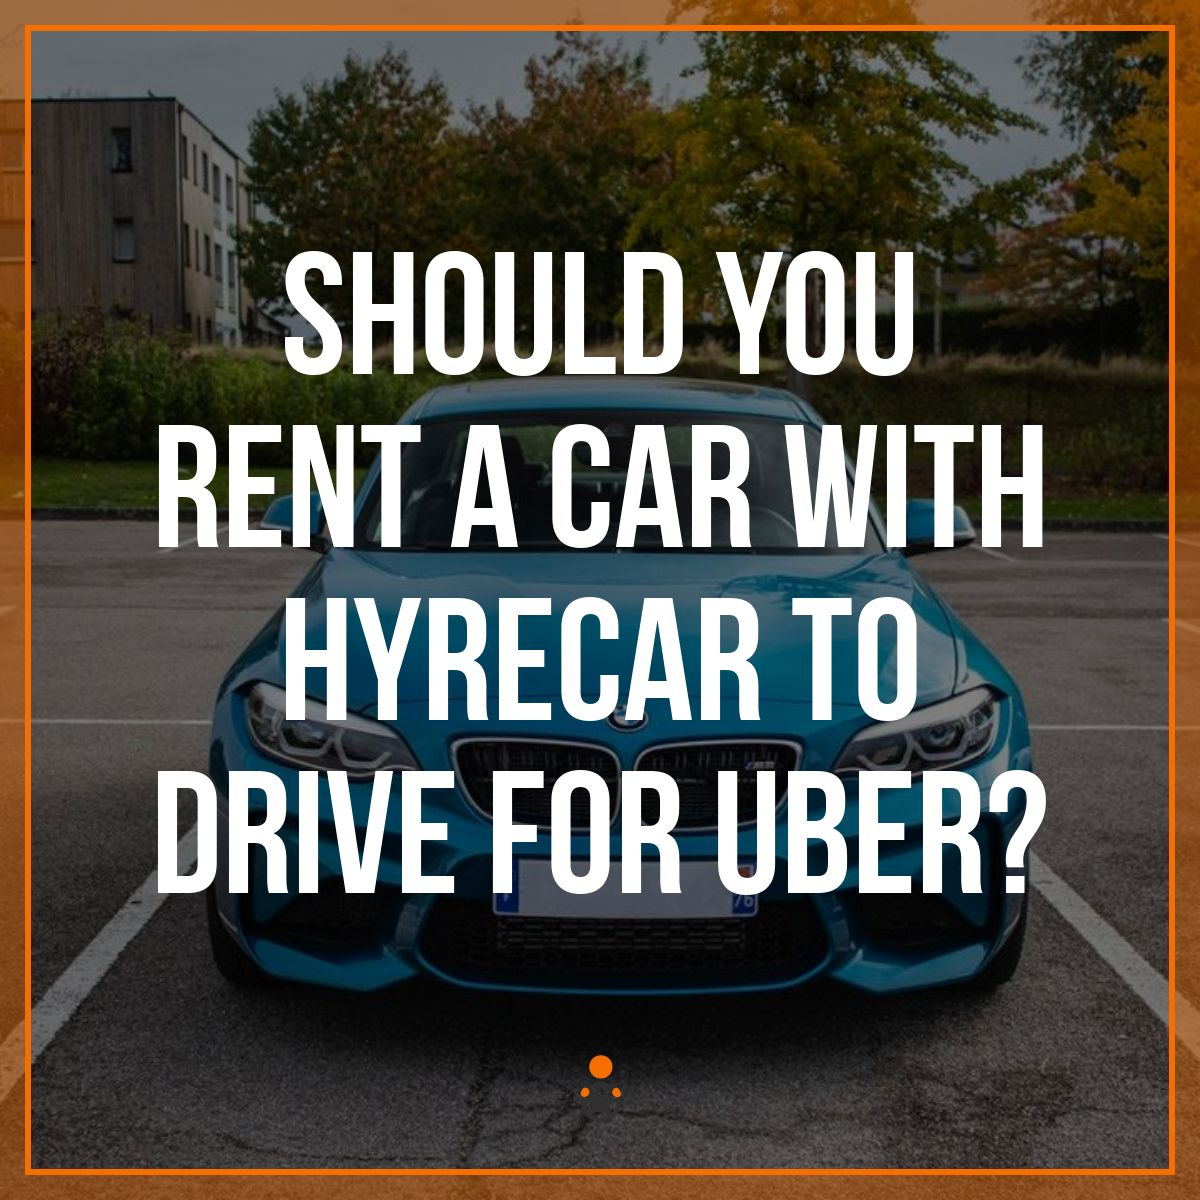 Should You Rent a Car with HyreCar to Drive for Uber?